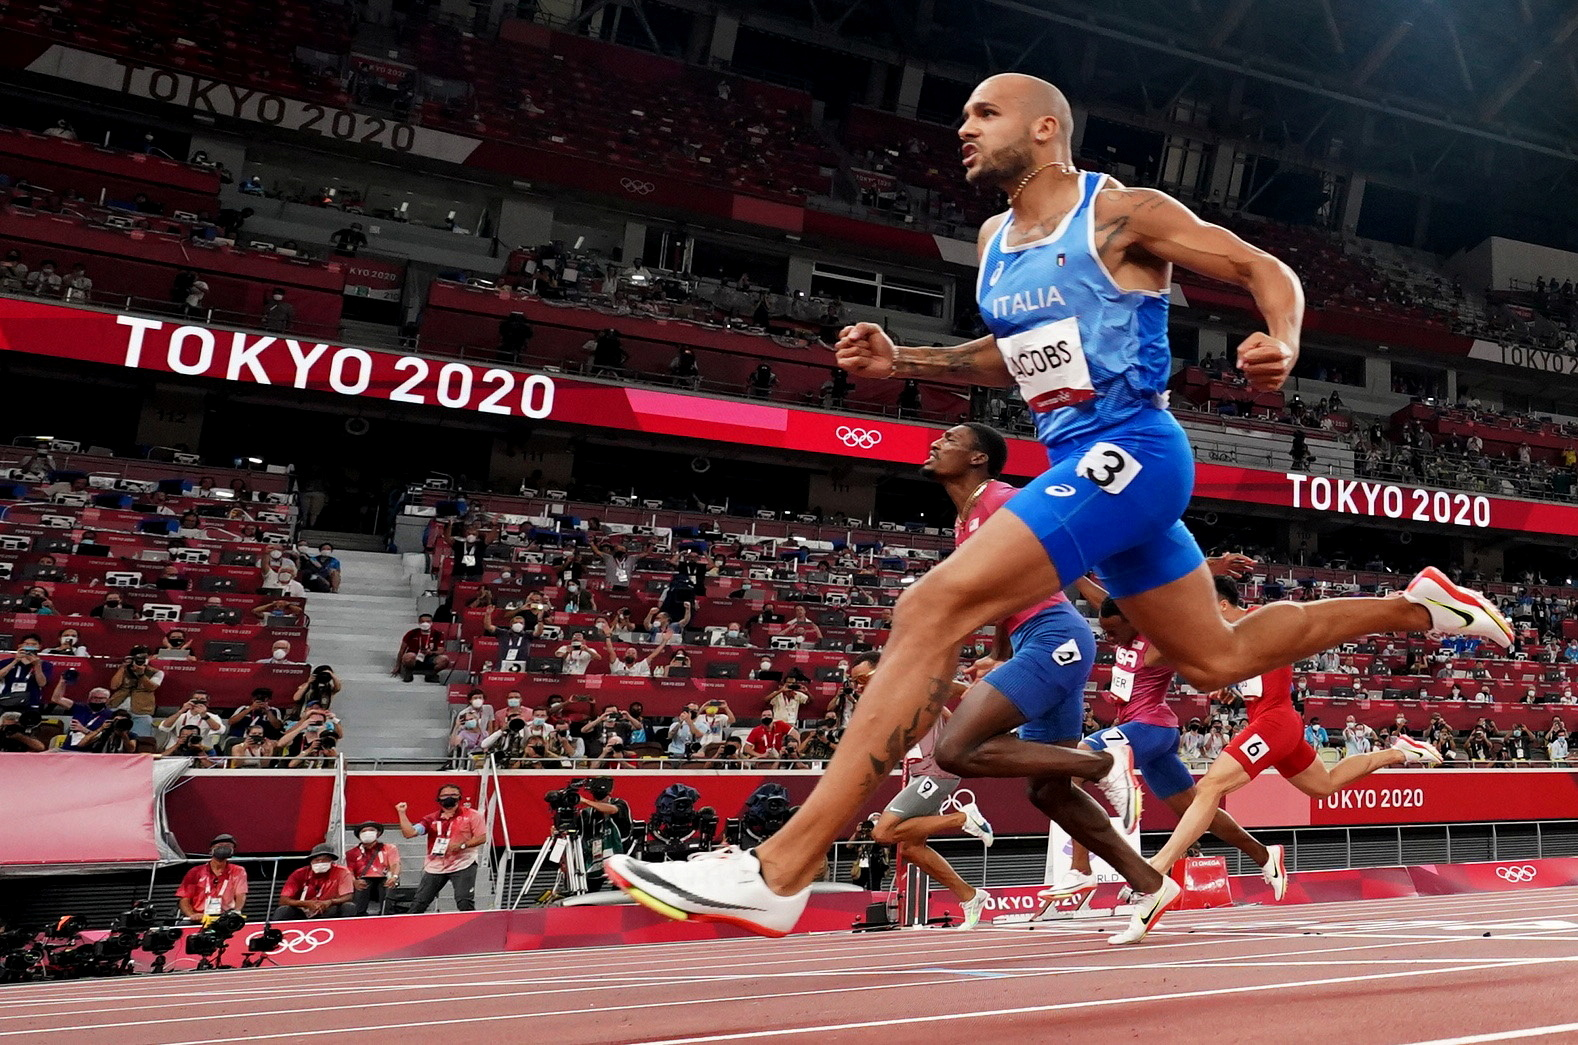 Tokyo 2020 Olympics - Athletics - Men's 100m - Final - OLS - Olympic Stadium, Tokyo, Japan - August 1, 2021. Lamont Marcell Jacobs of Italy crosses the finish line and wins gold REUTERS/Fabrizio Bensch     TPX IMAGES OF THE DAY